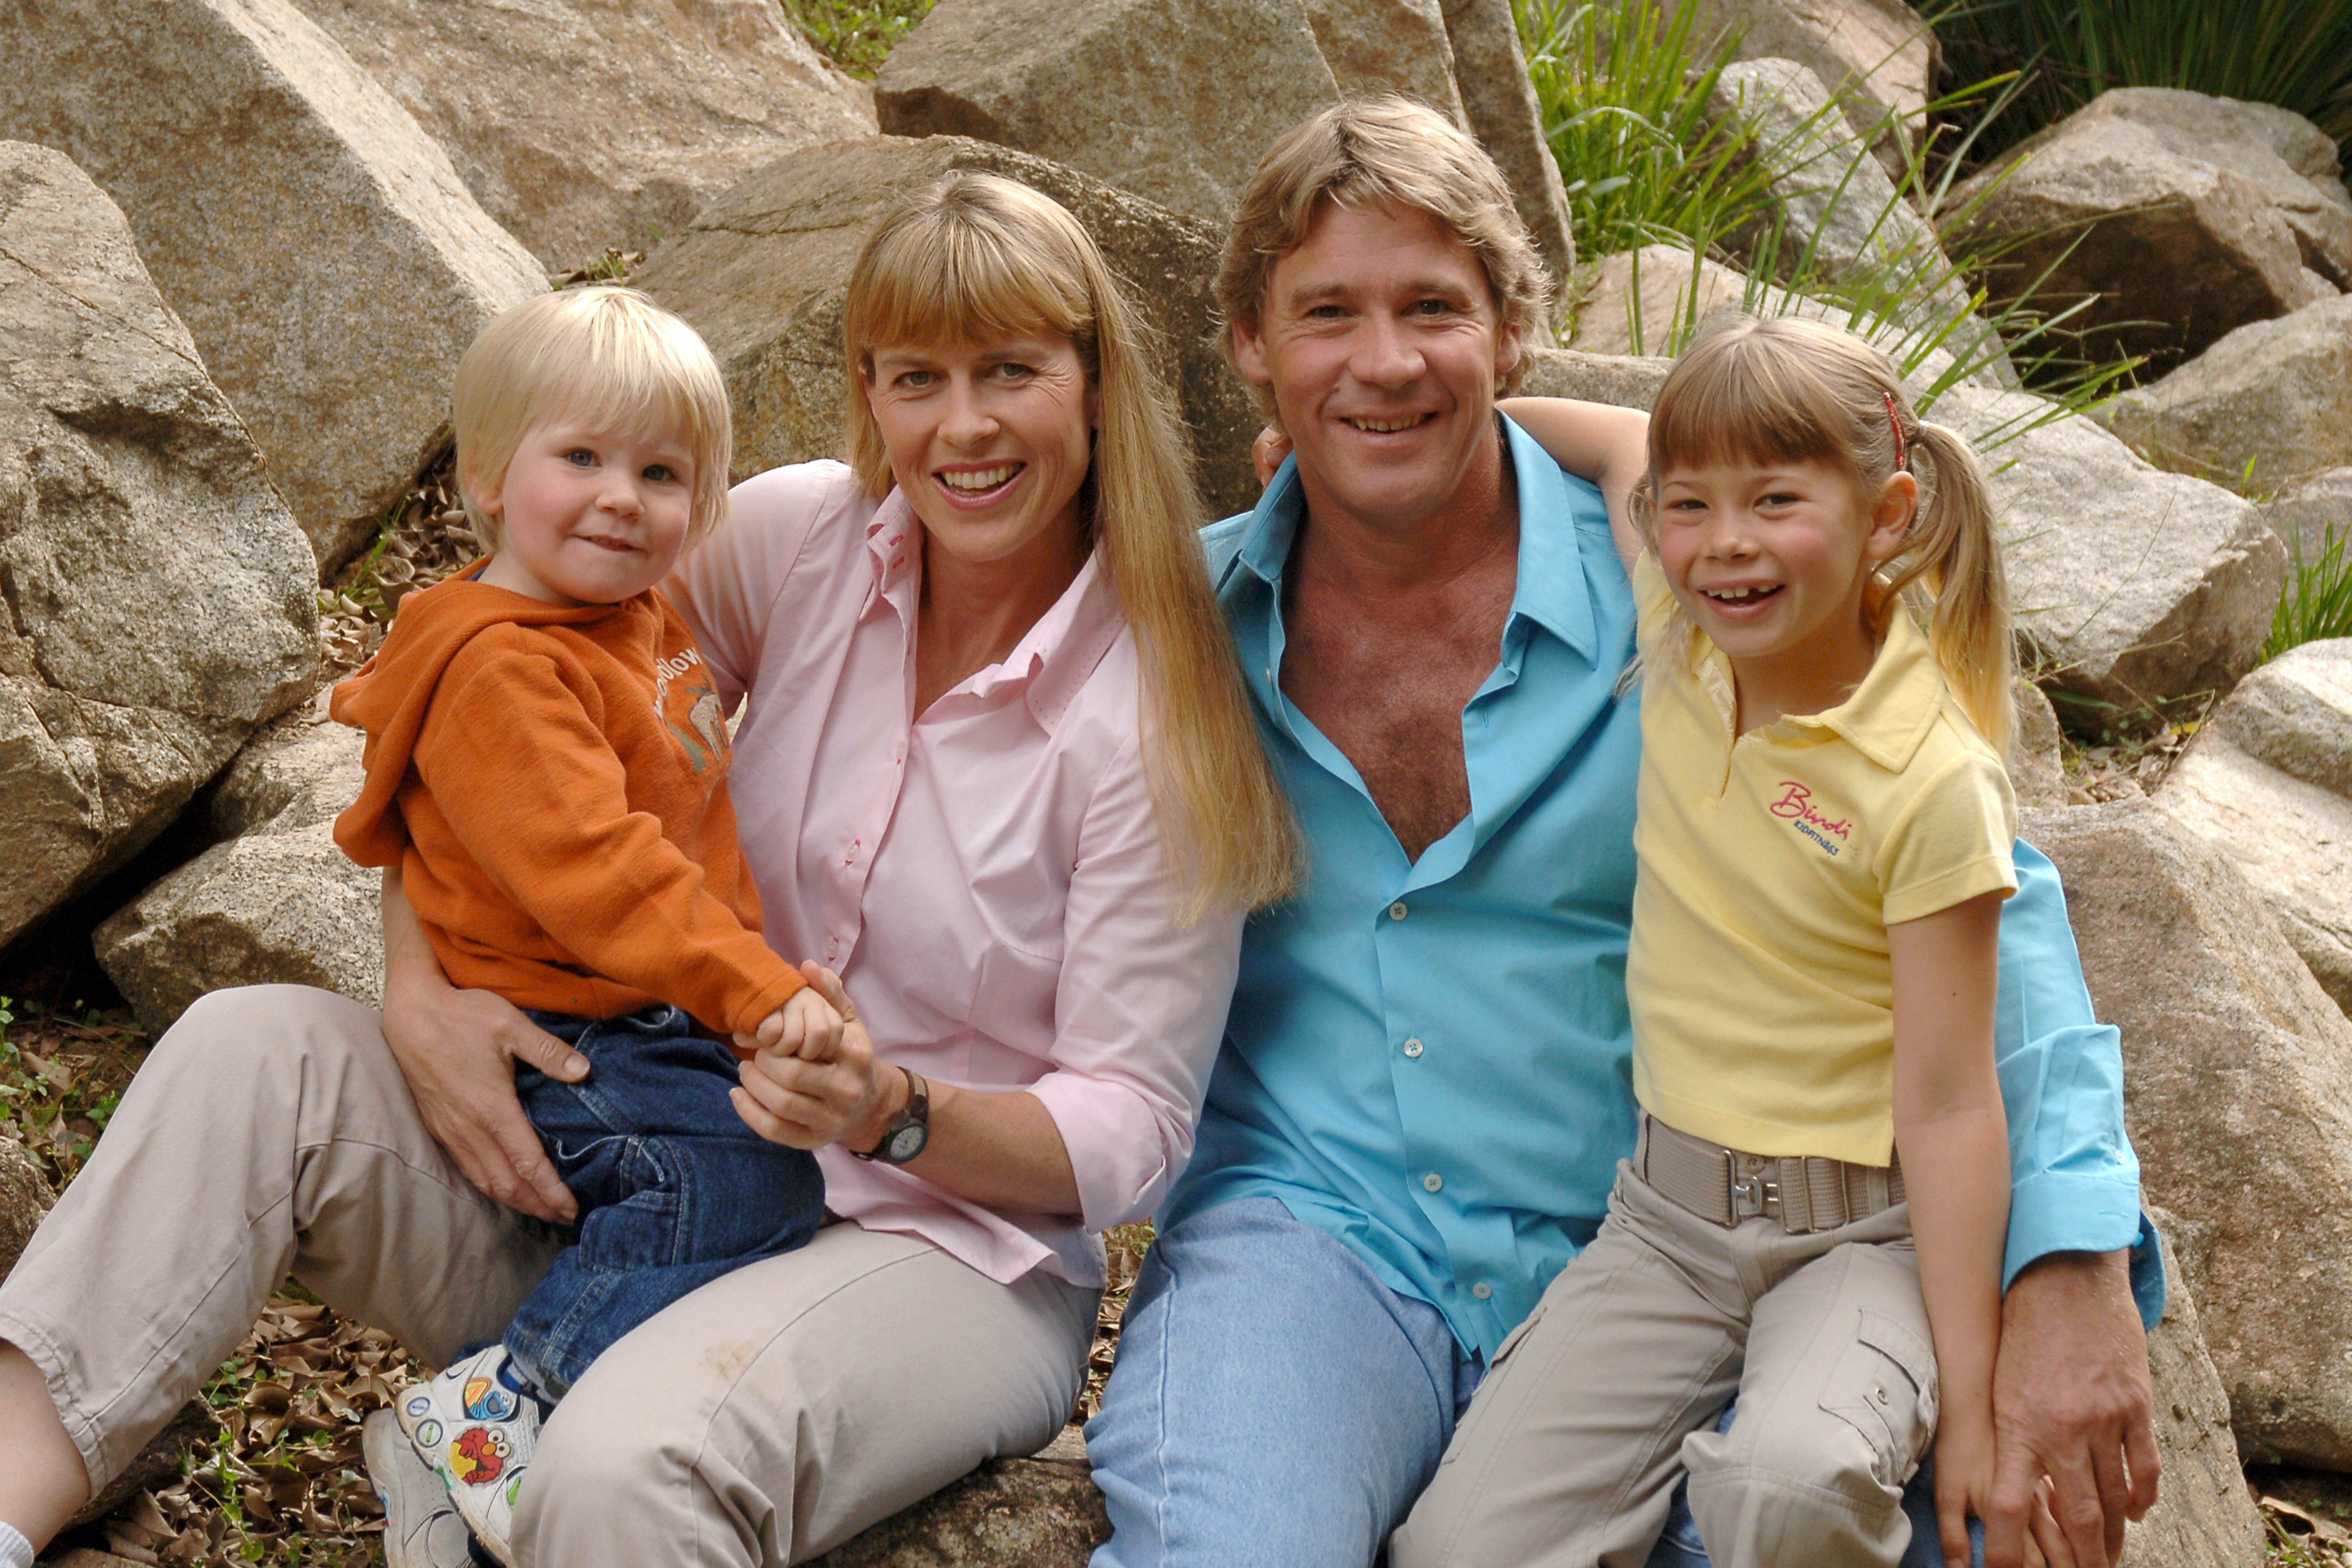 Steve Irwin, his wife Terry, his daughter Bindi and son Robert at Australia Zoo on June 19, 2006 | Source: Getty Images